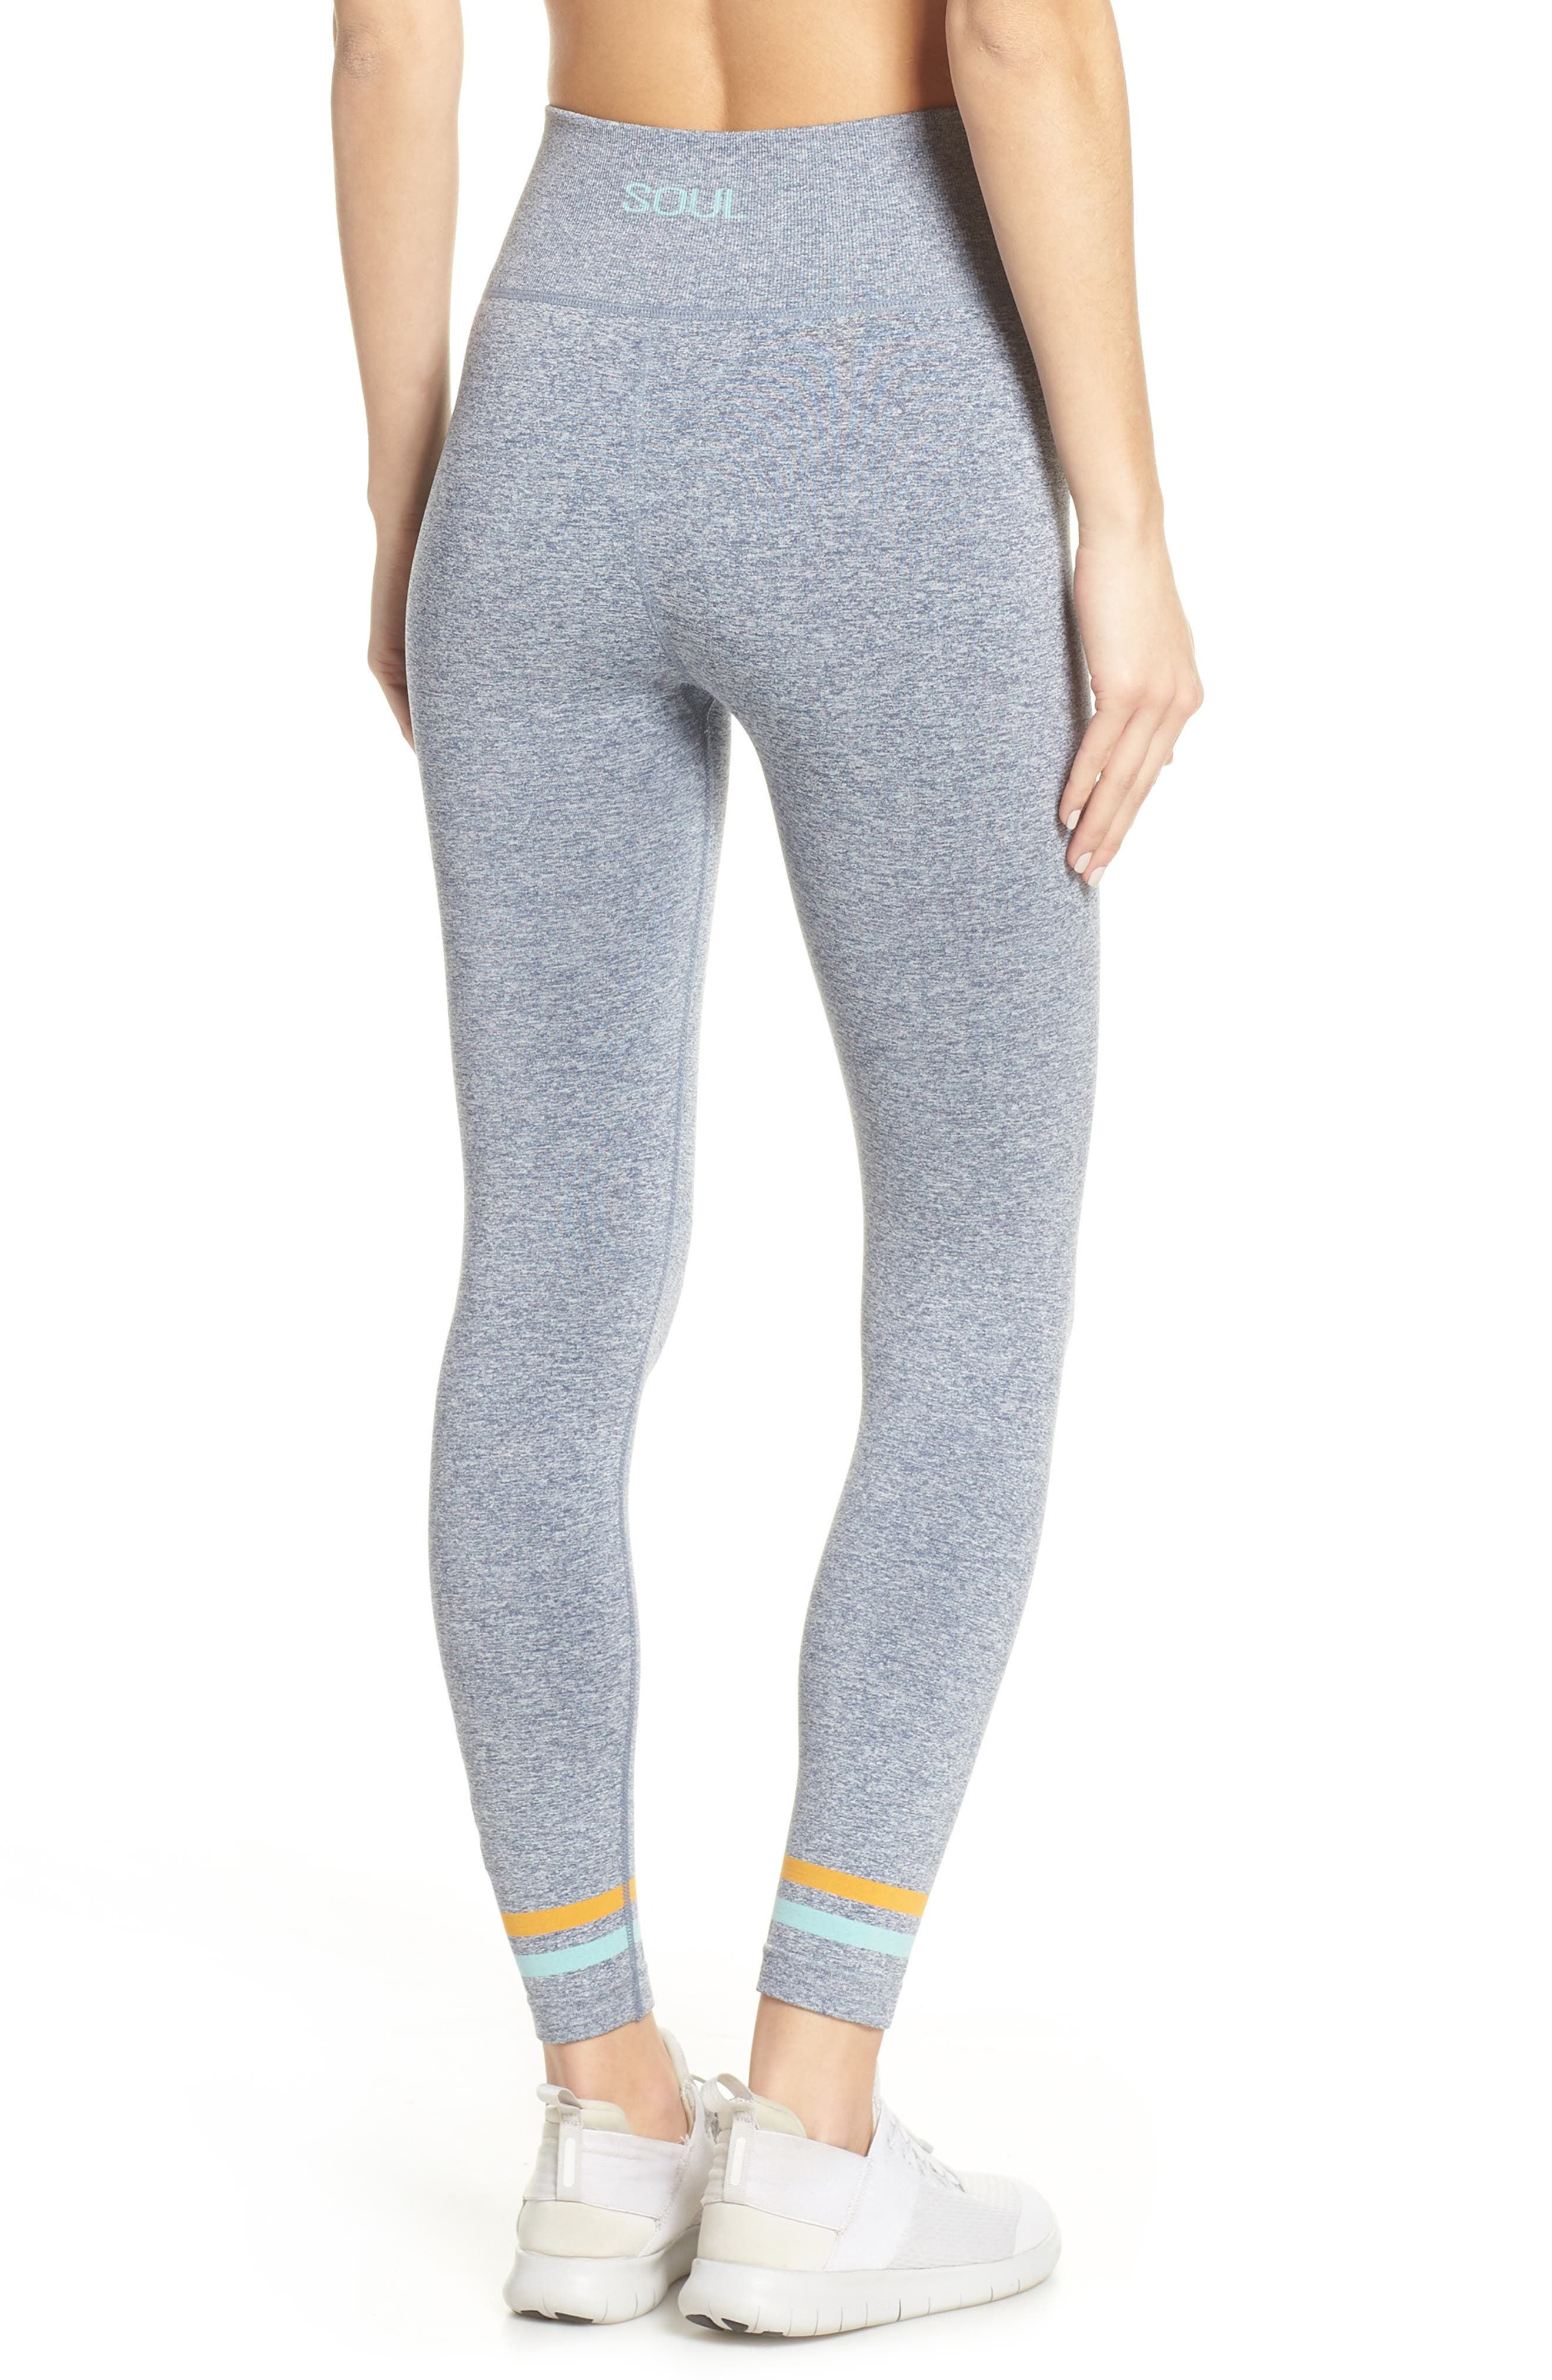 39f62cdf317b7e Women's Soul By Soulcycle Clothing | Nordstrom